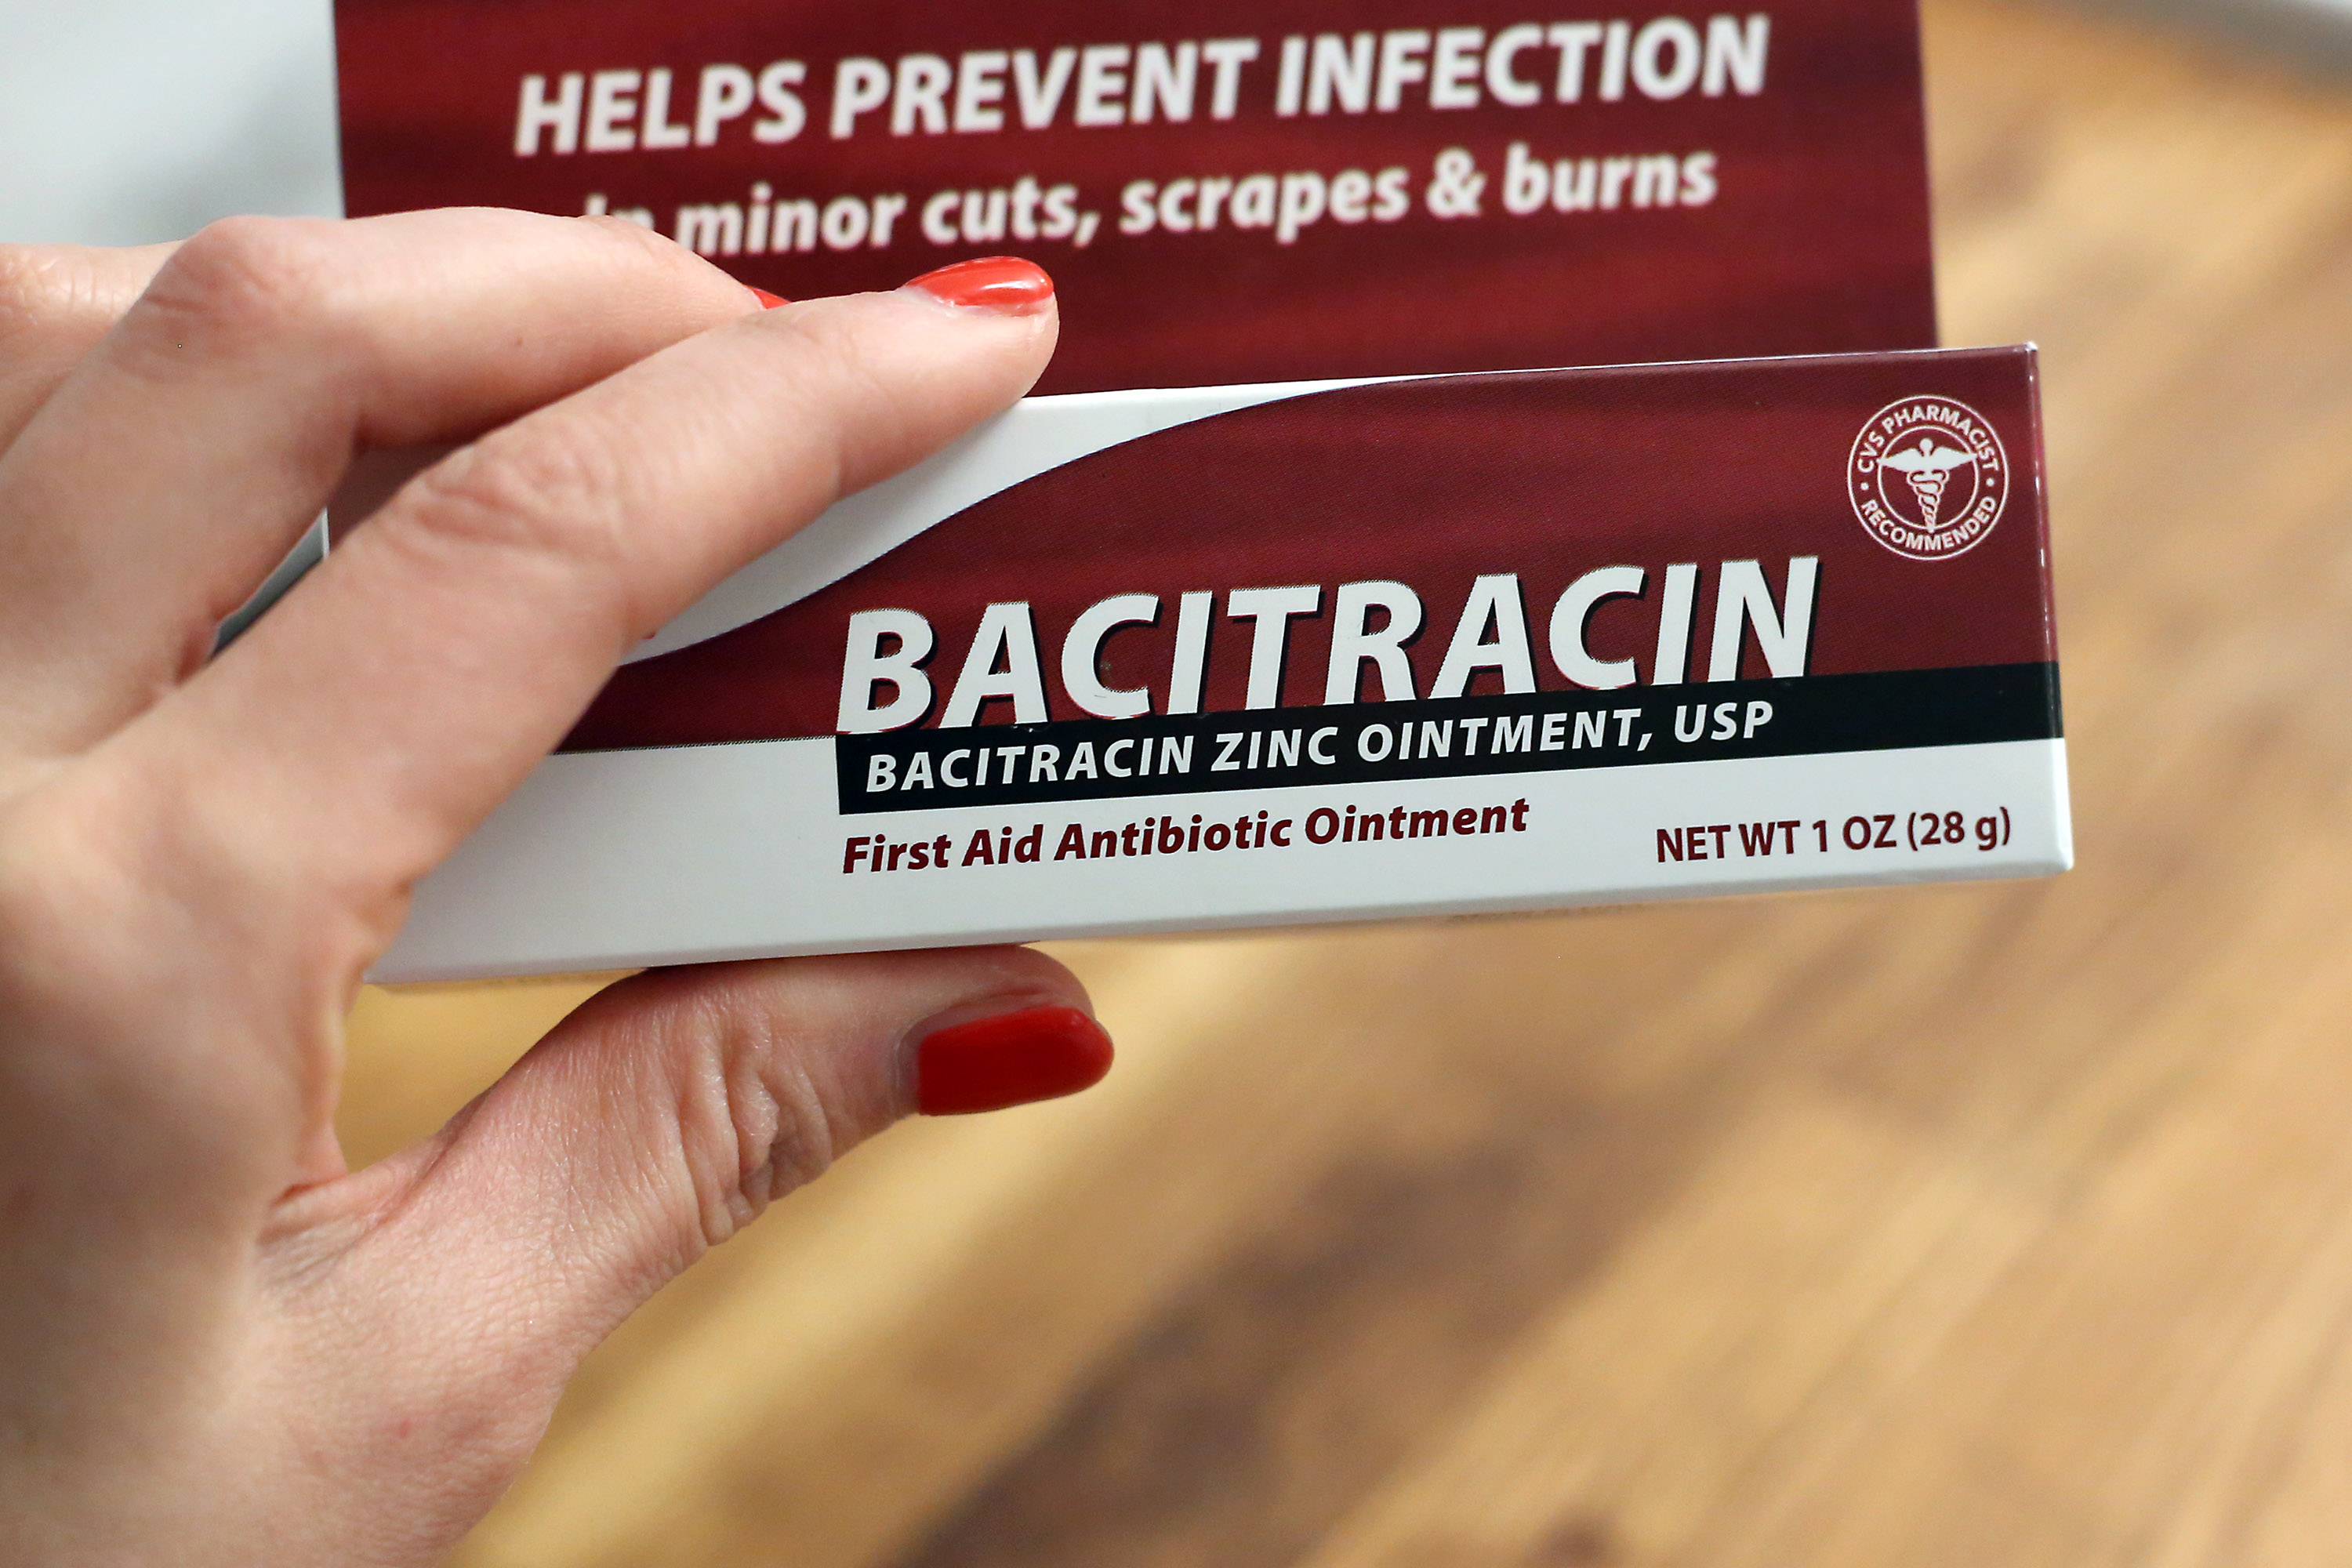 What Is Bacitracin Zinc Ointment? | Healthy Living